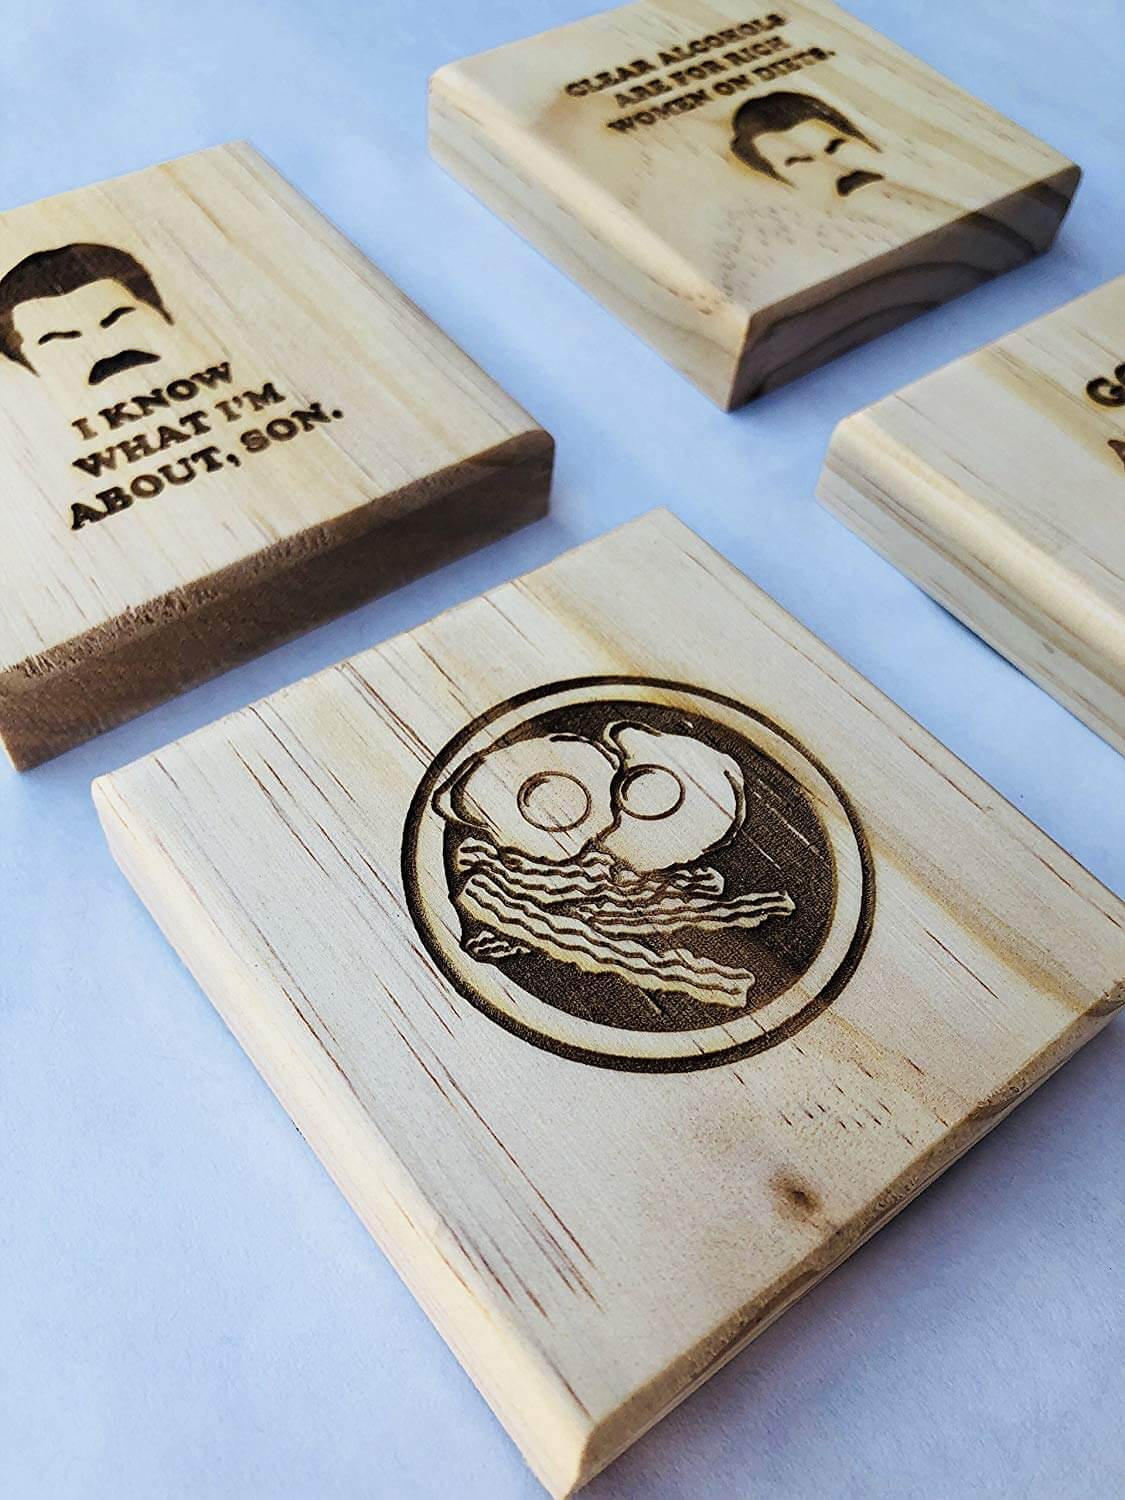 Ron Swanson Coasters: Permanent Engraved Gift Set of 4 Wood Coasters